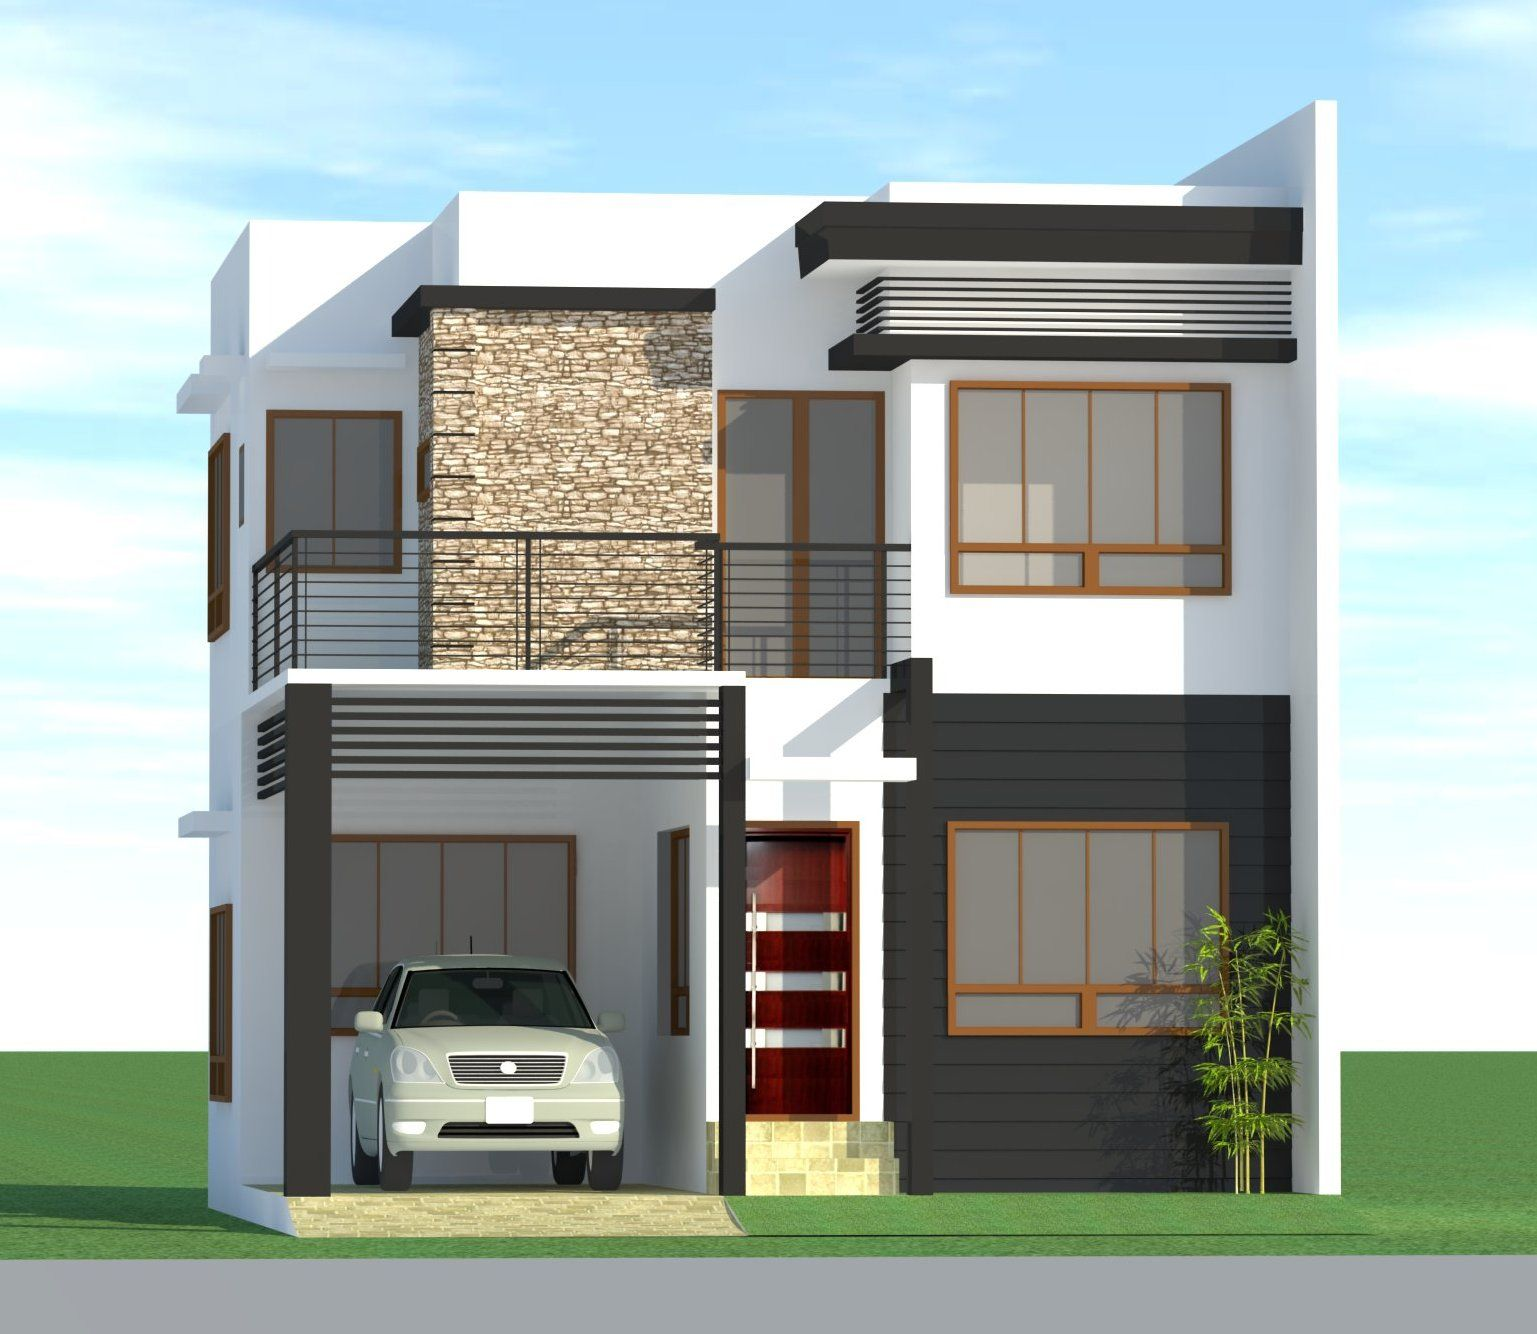 Philippines house design images 3 home design ideas for Front entrance home designs